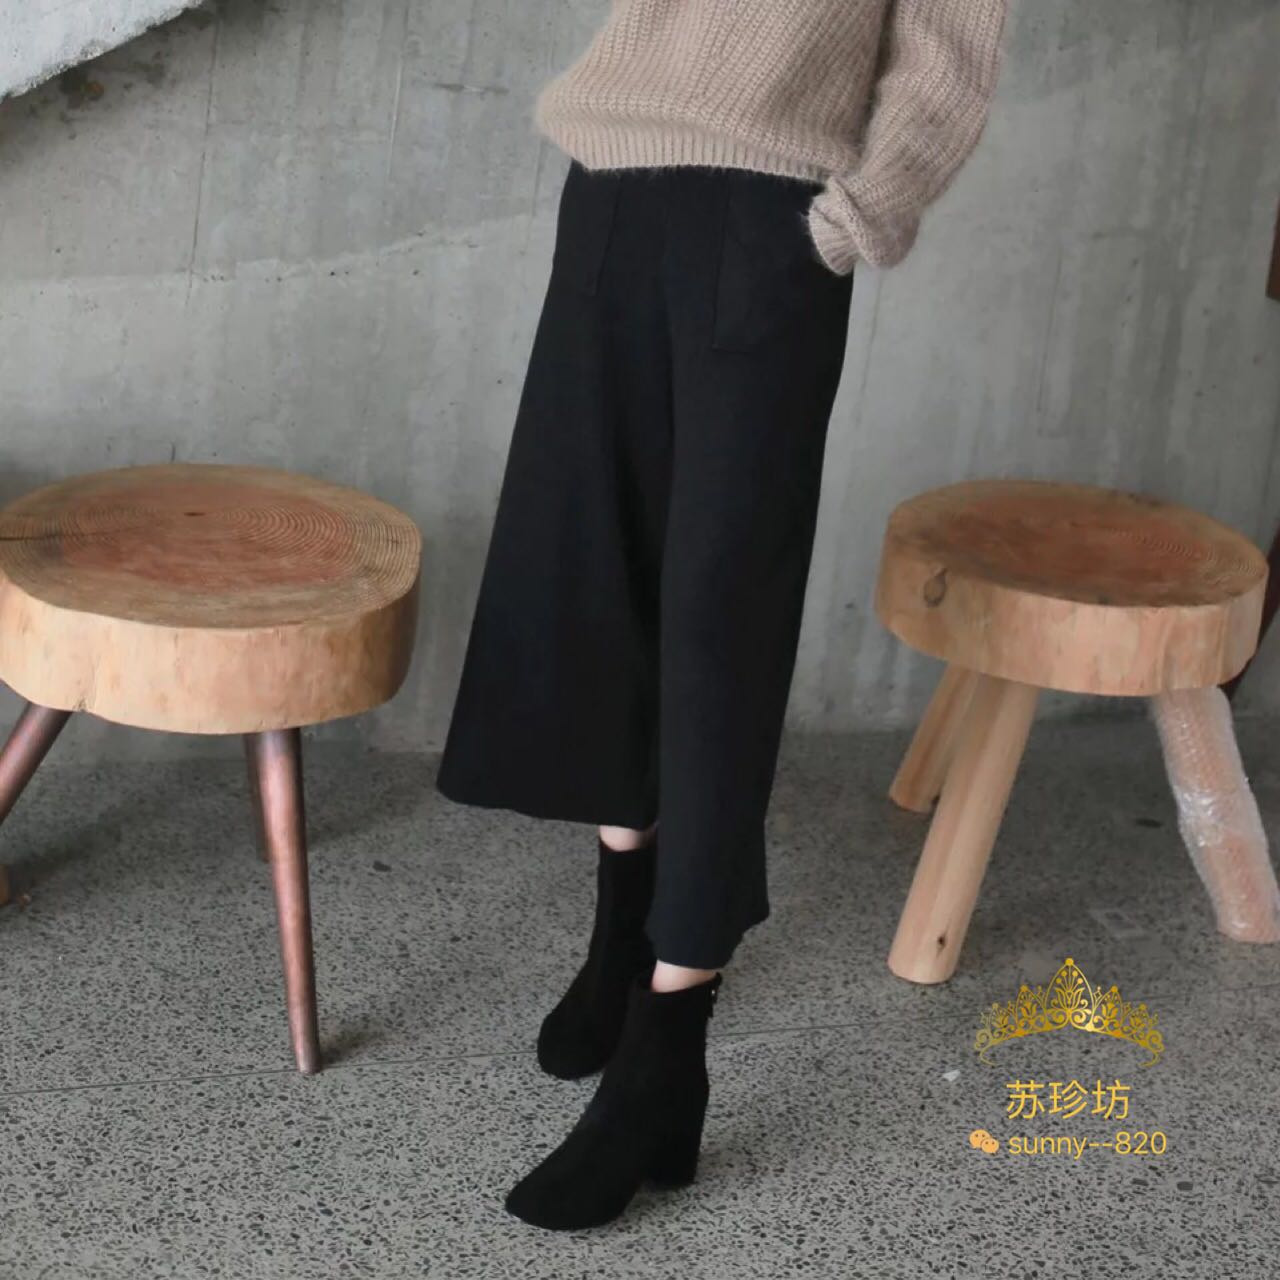 Su Zhenfang autumn and winter double pocket soft knitted cashmere skin friendly comfortable trousers and wide leg pants